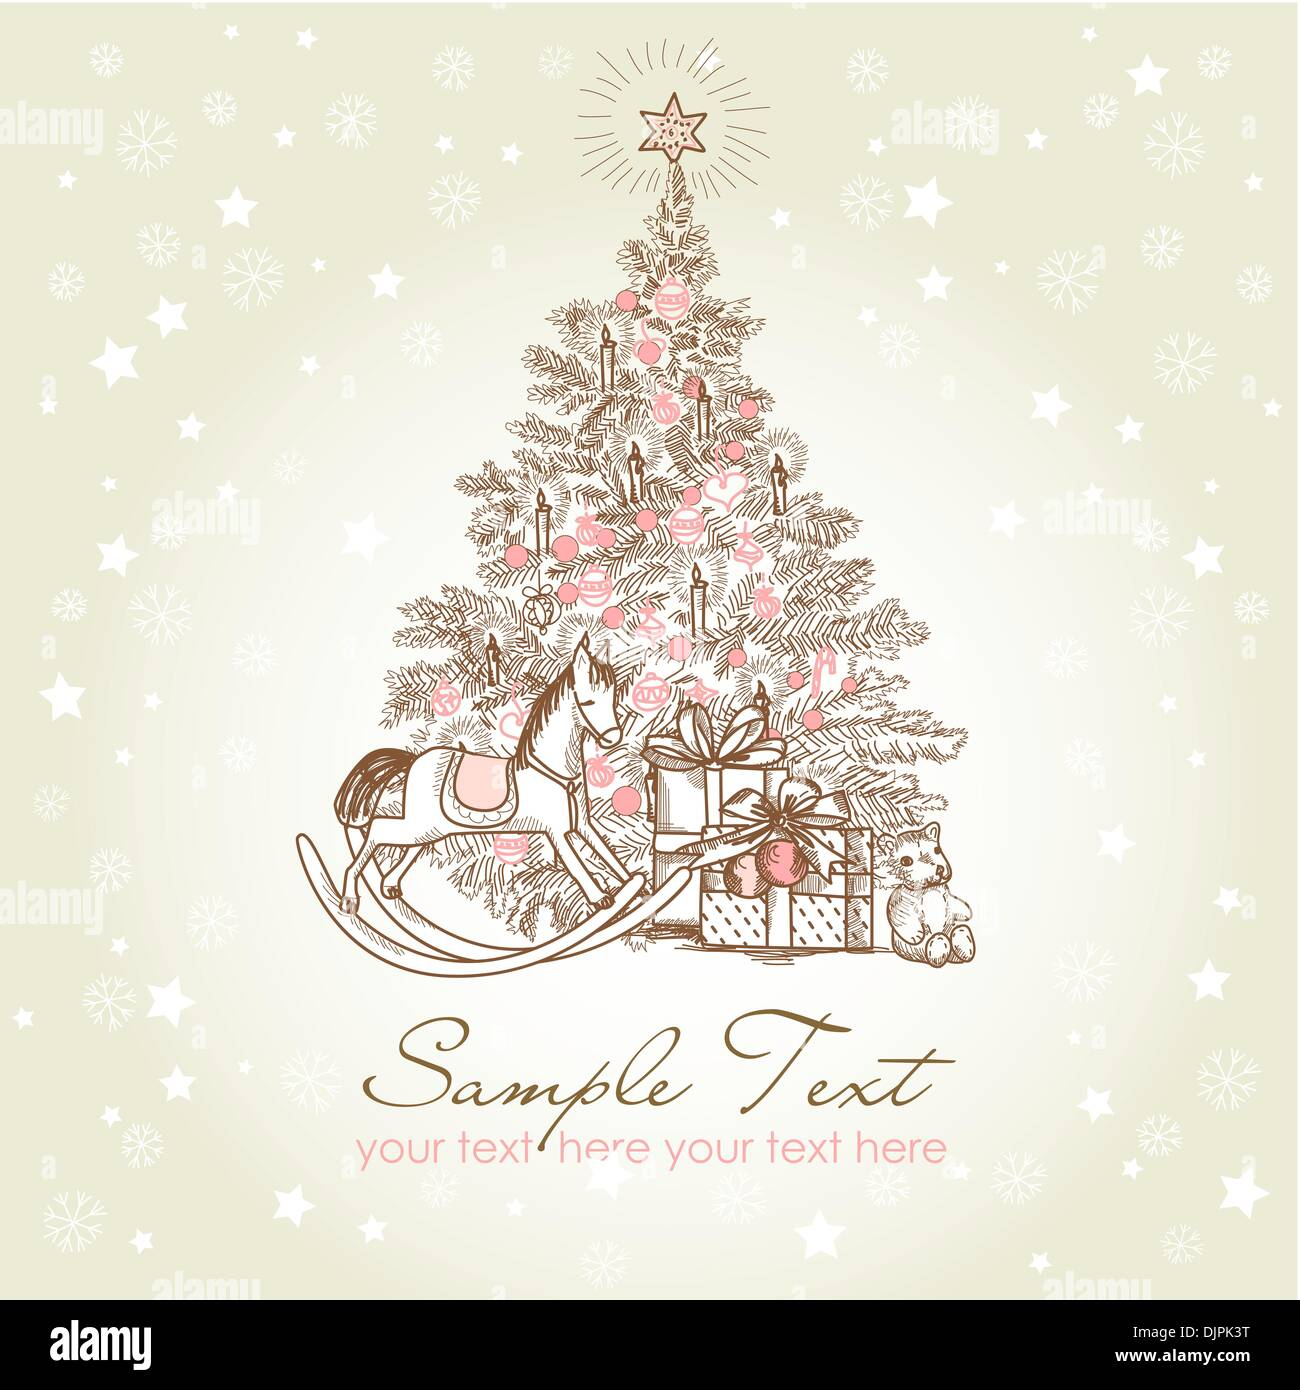 Vintage Christmas Card Beautiful Christmas Tree Illustration Stock Vector Image Art Alamy